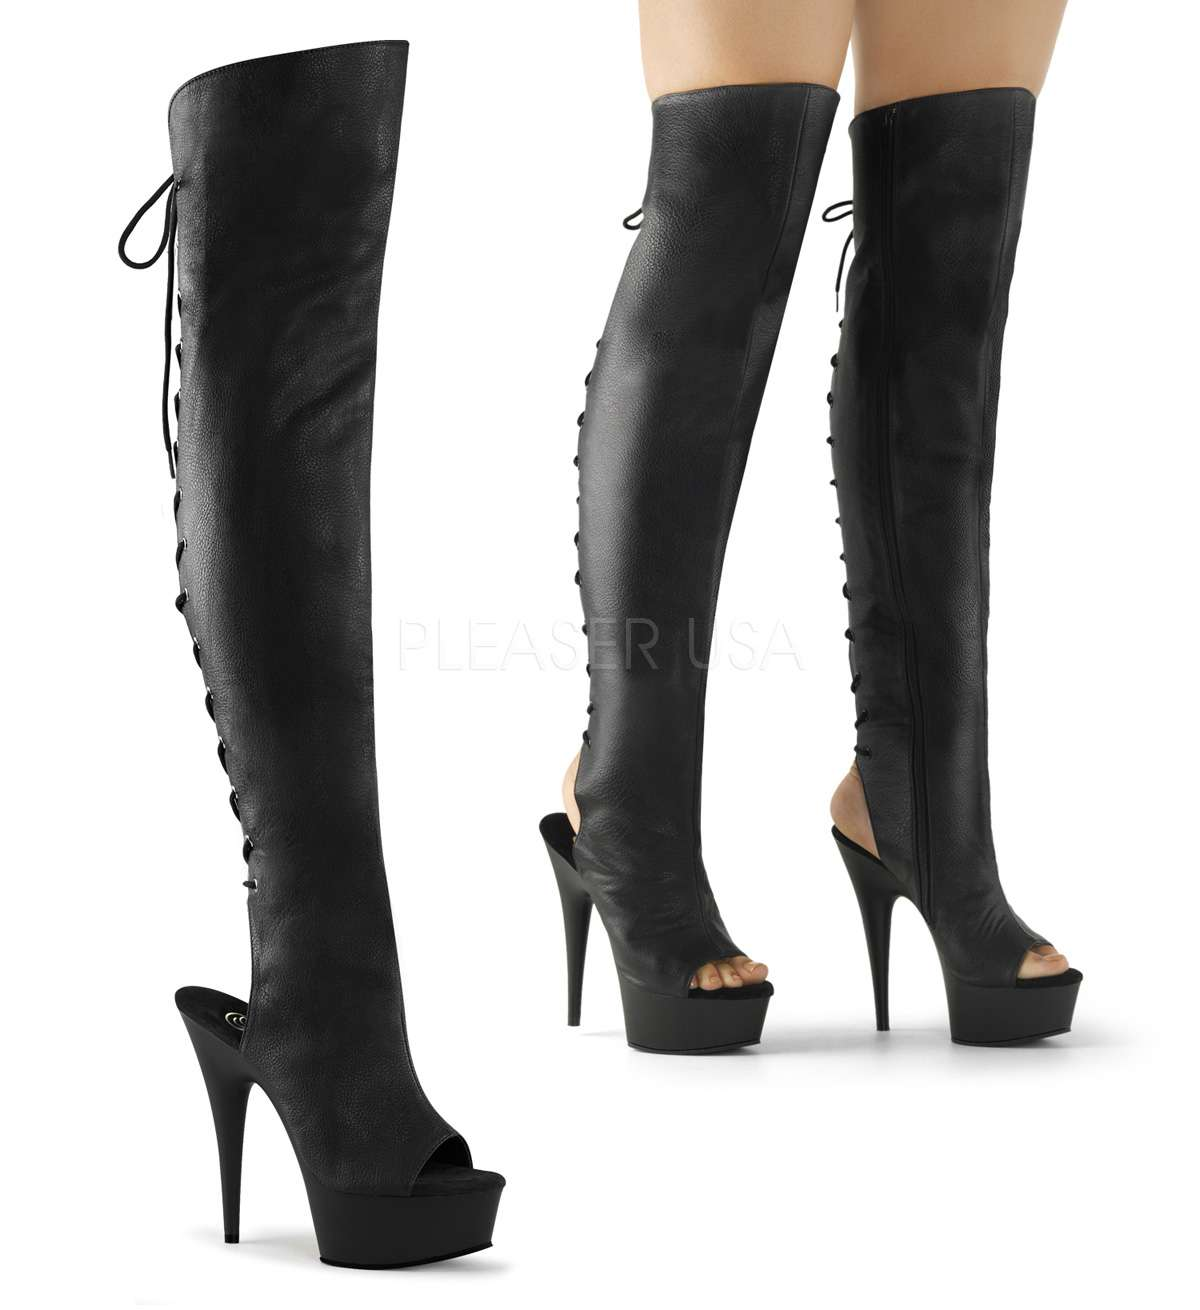 bea9077d04702 High Heels, Stiefel, Pumps bei Fashion Unlimited online | Fashion ...